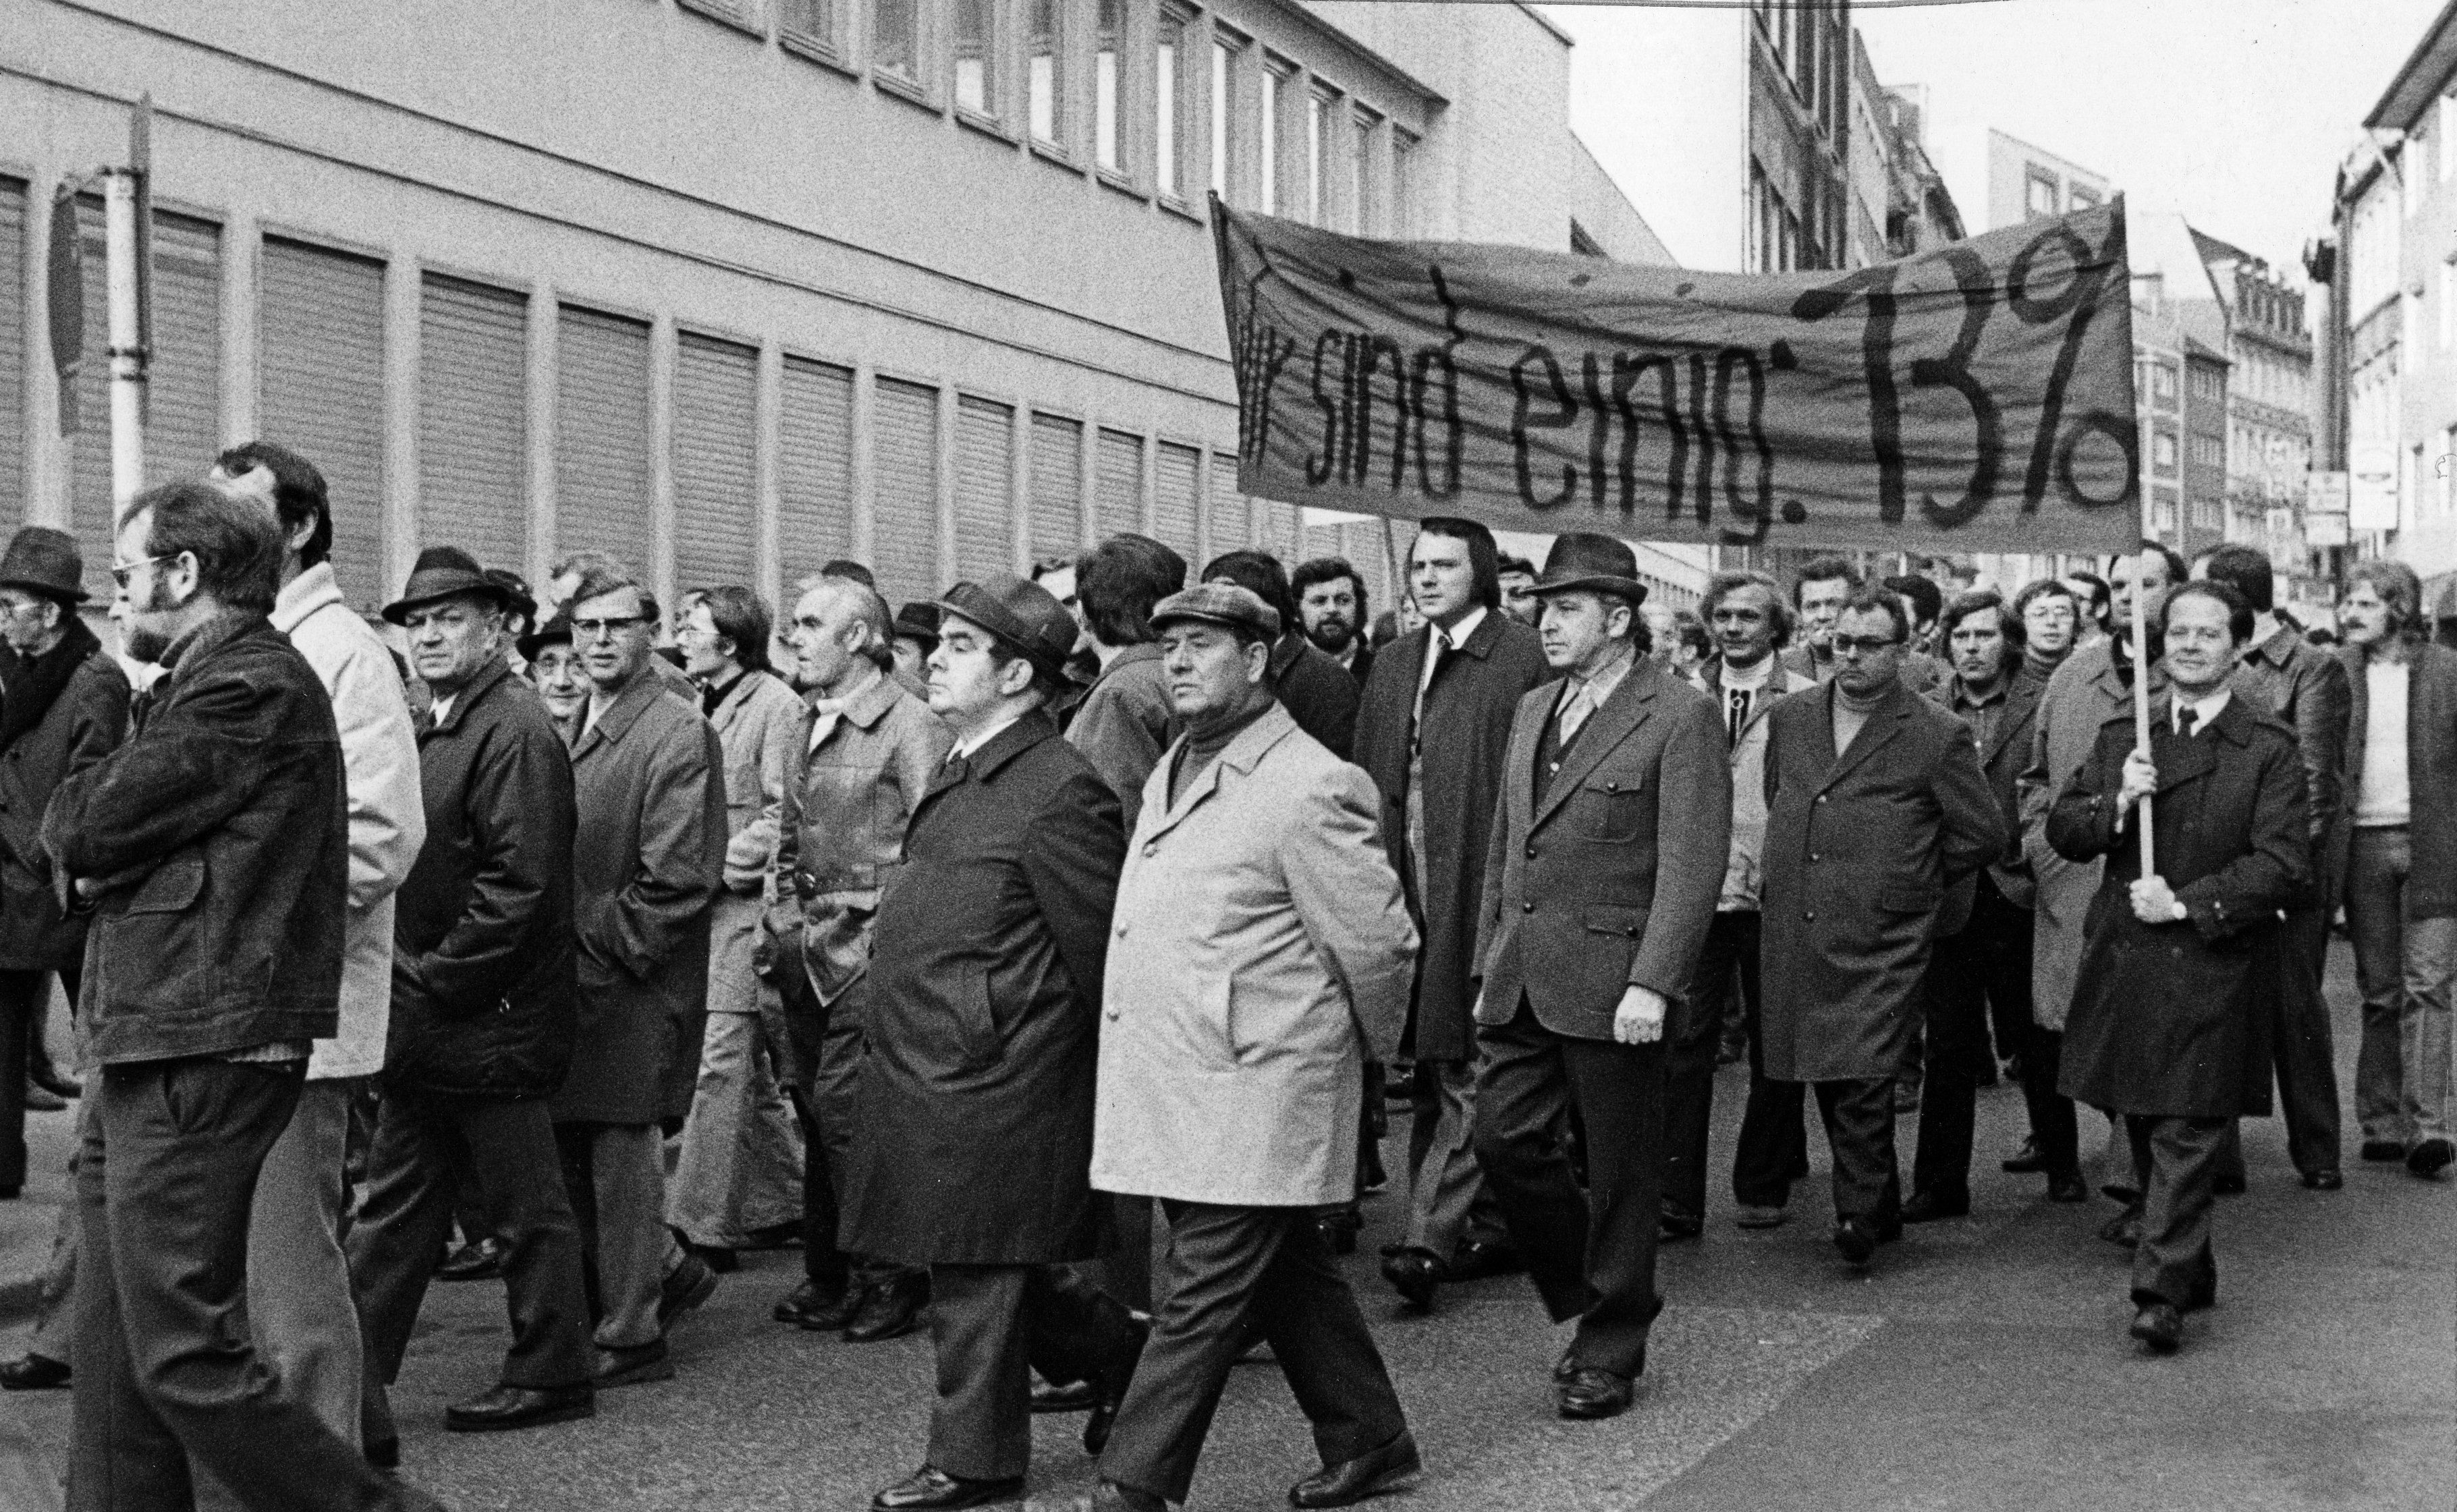 Streik 1973 - Forderung 13% mehr Lohn - By Monster4711 (Own work) [CC0], via Wikimedia Commons